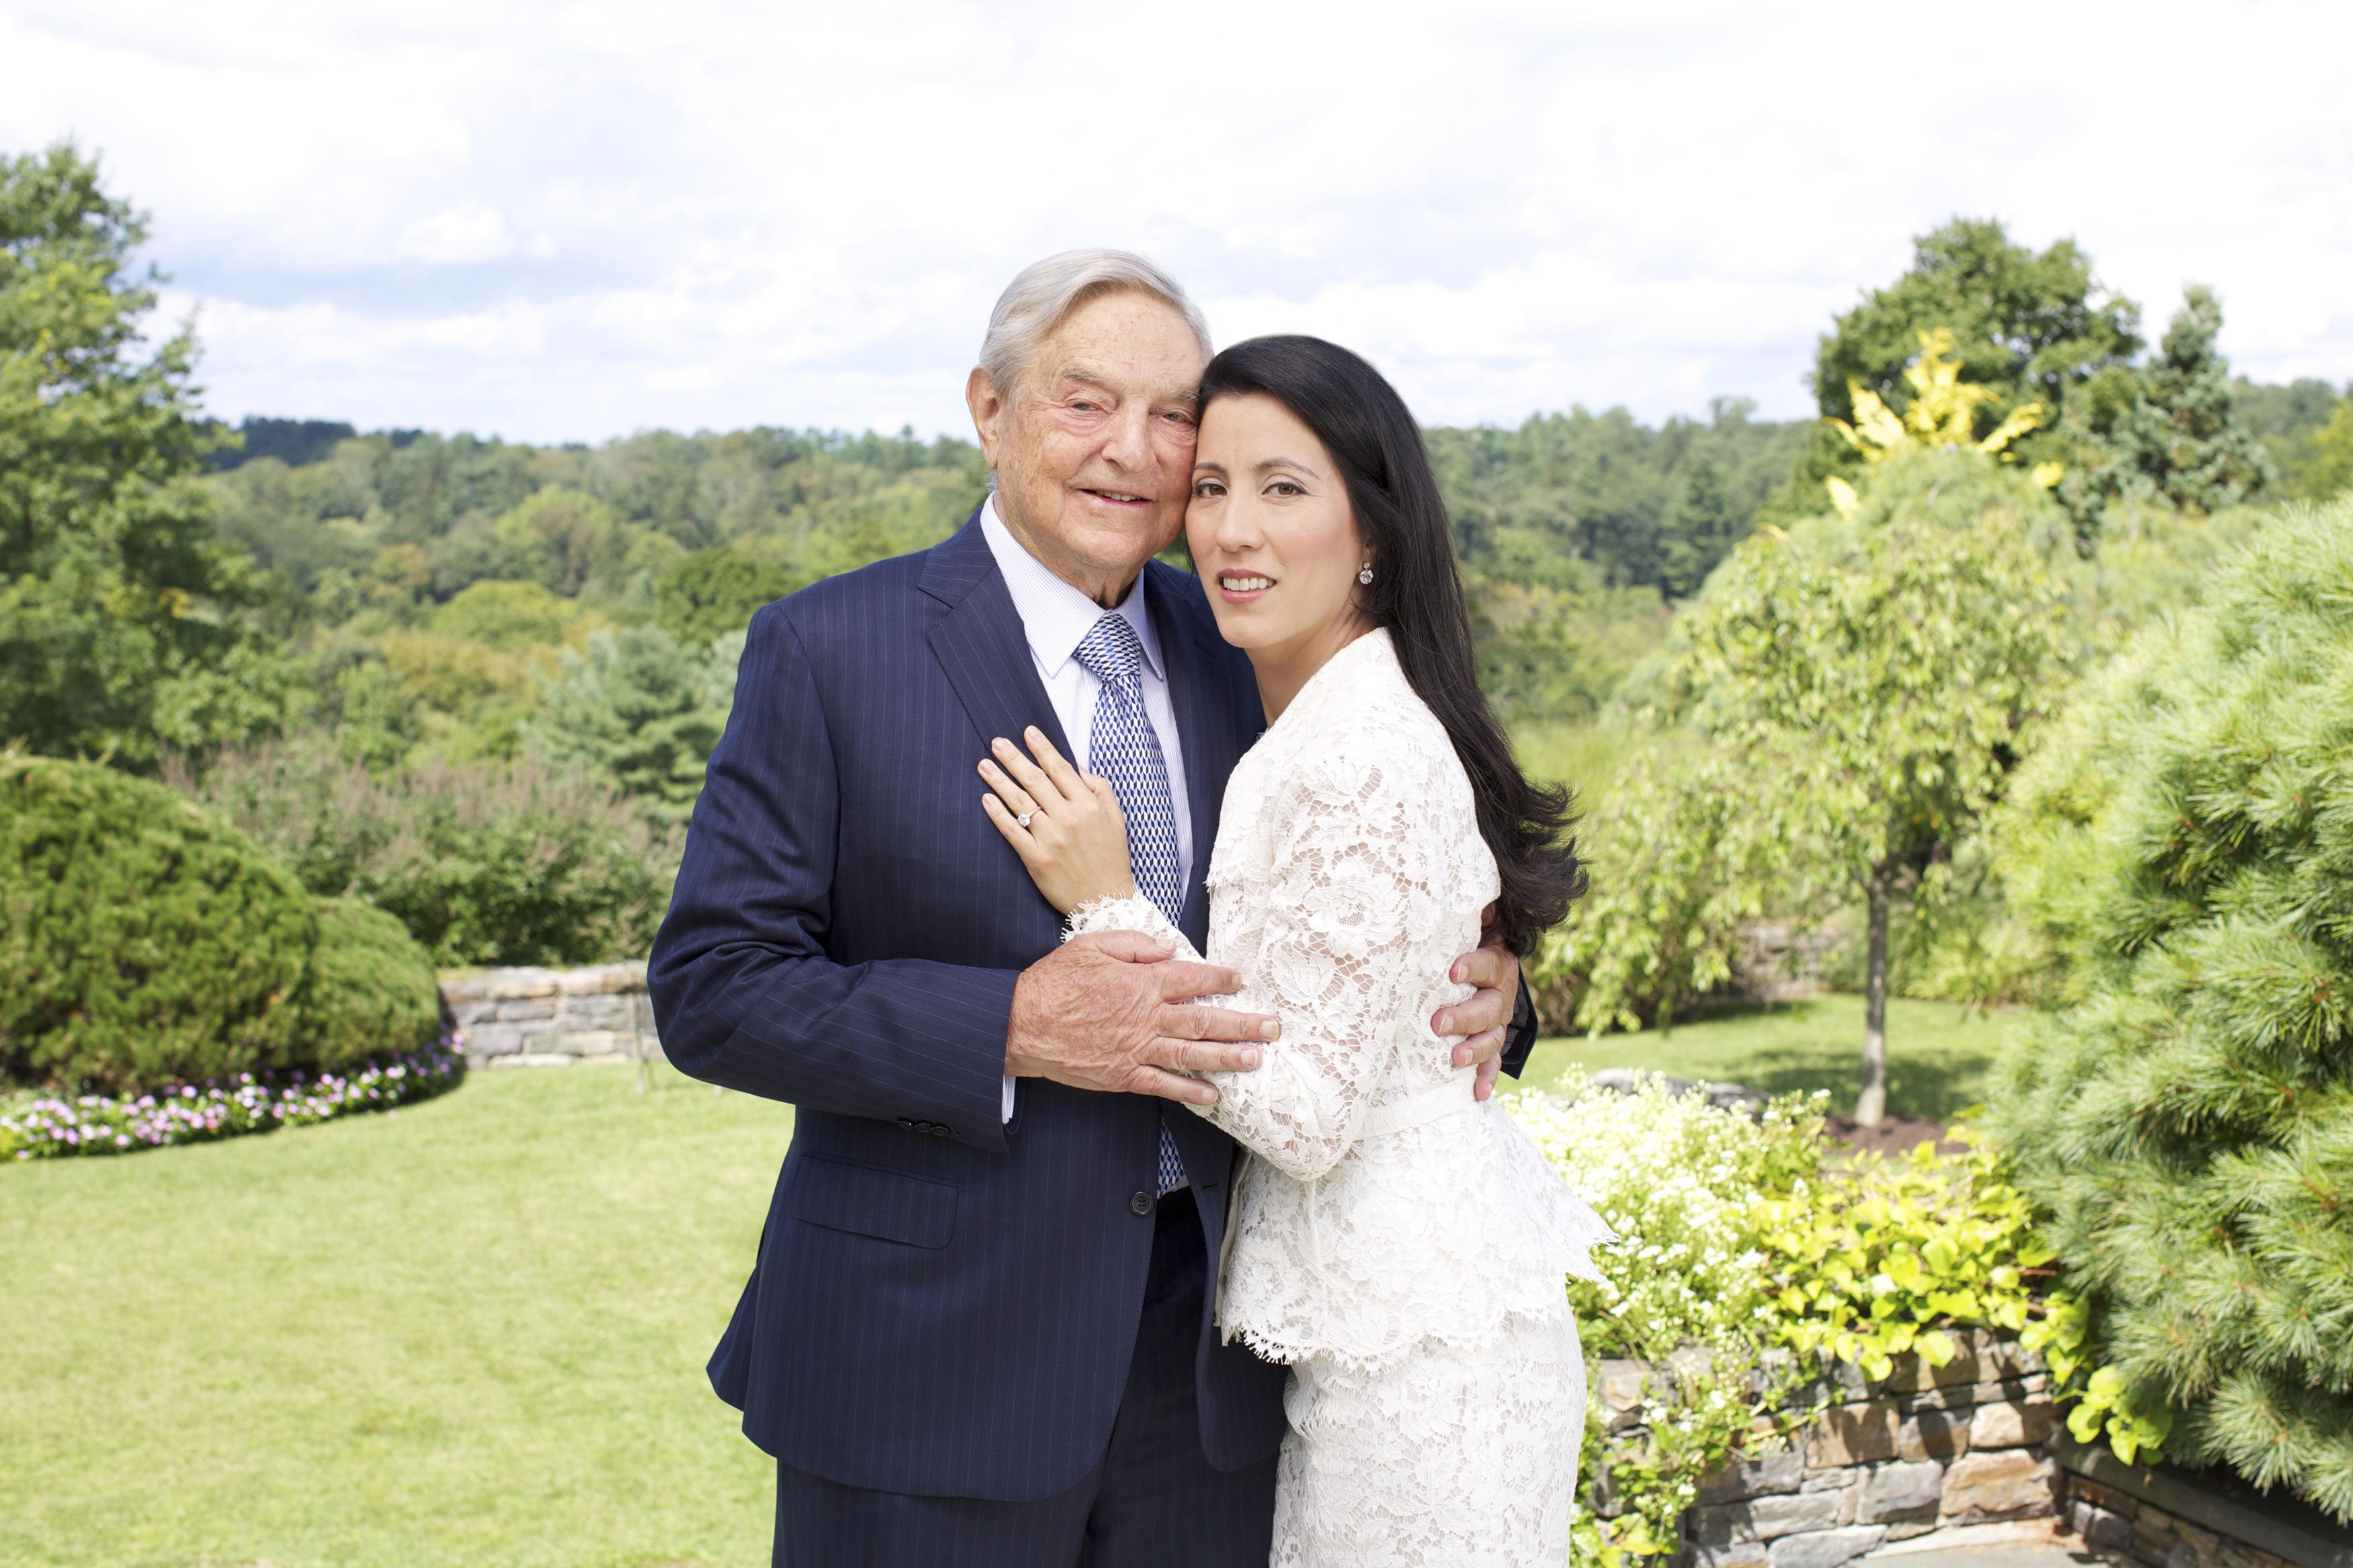 Soros to marry for third time, with three-day New York celebration